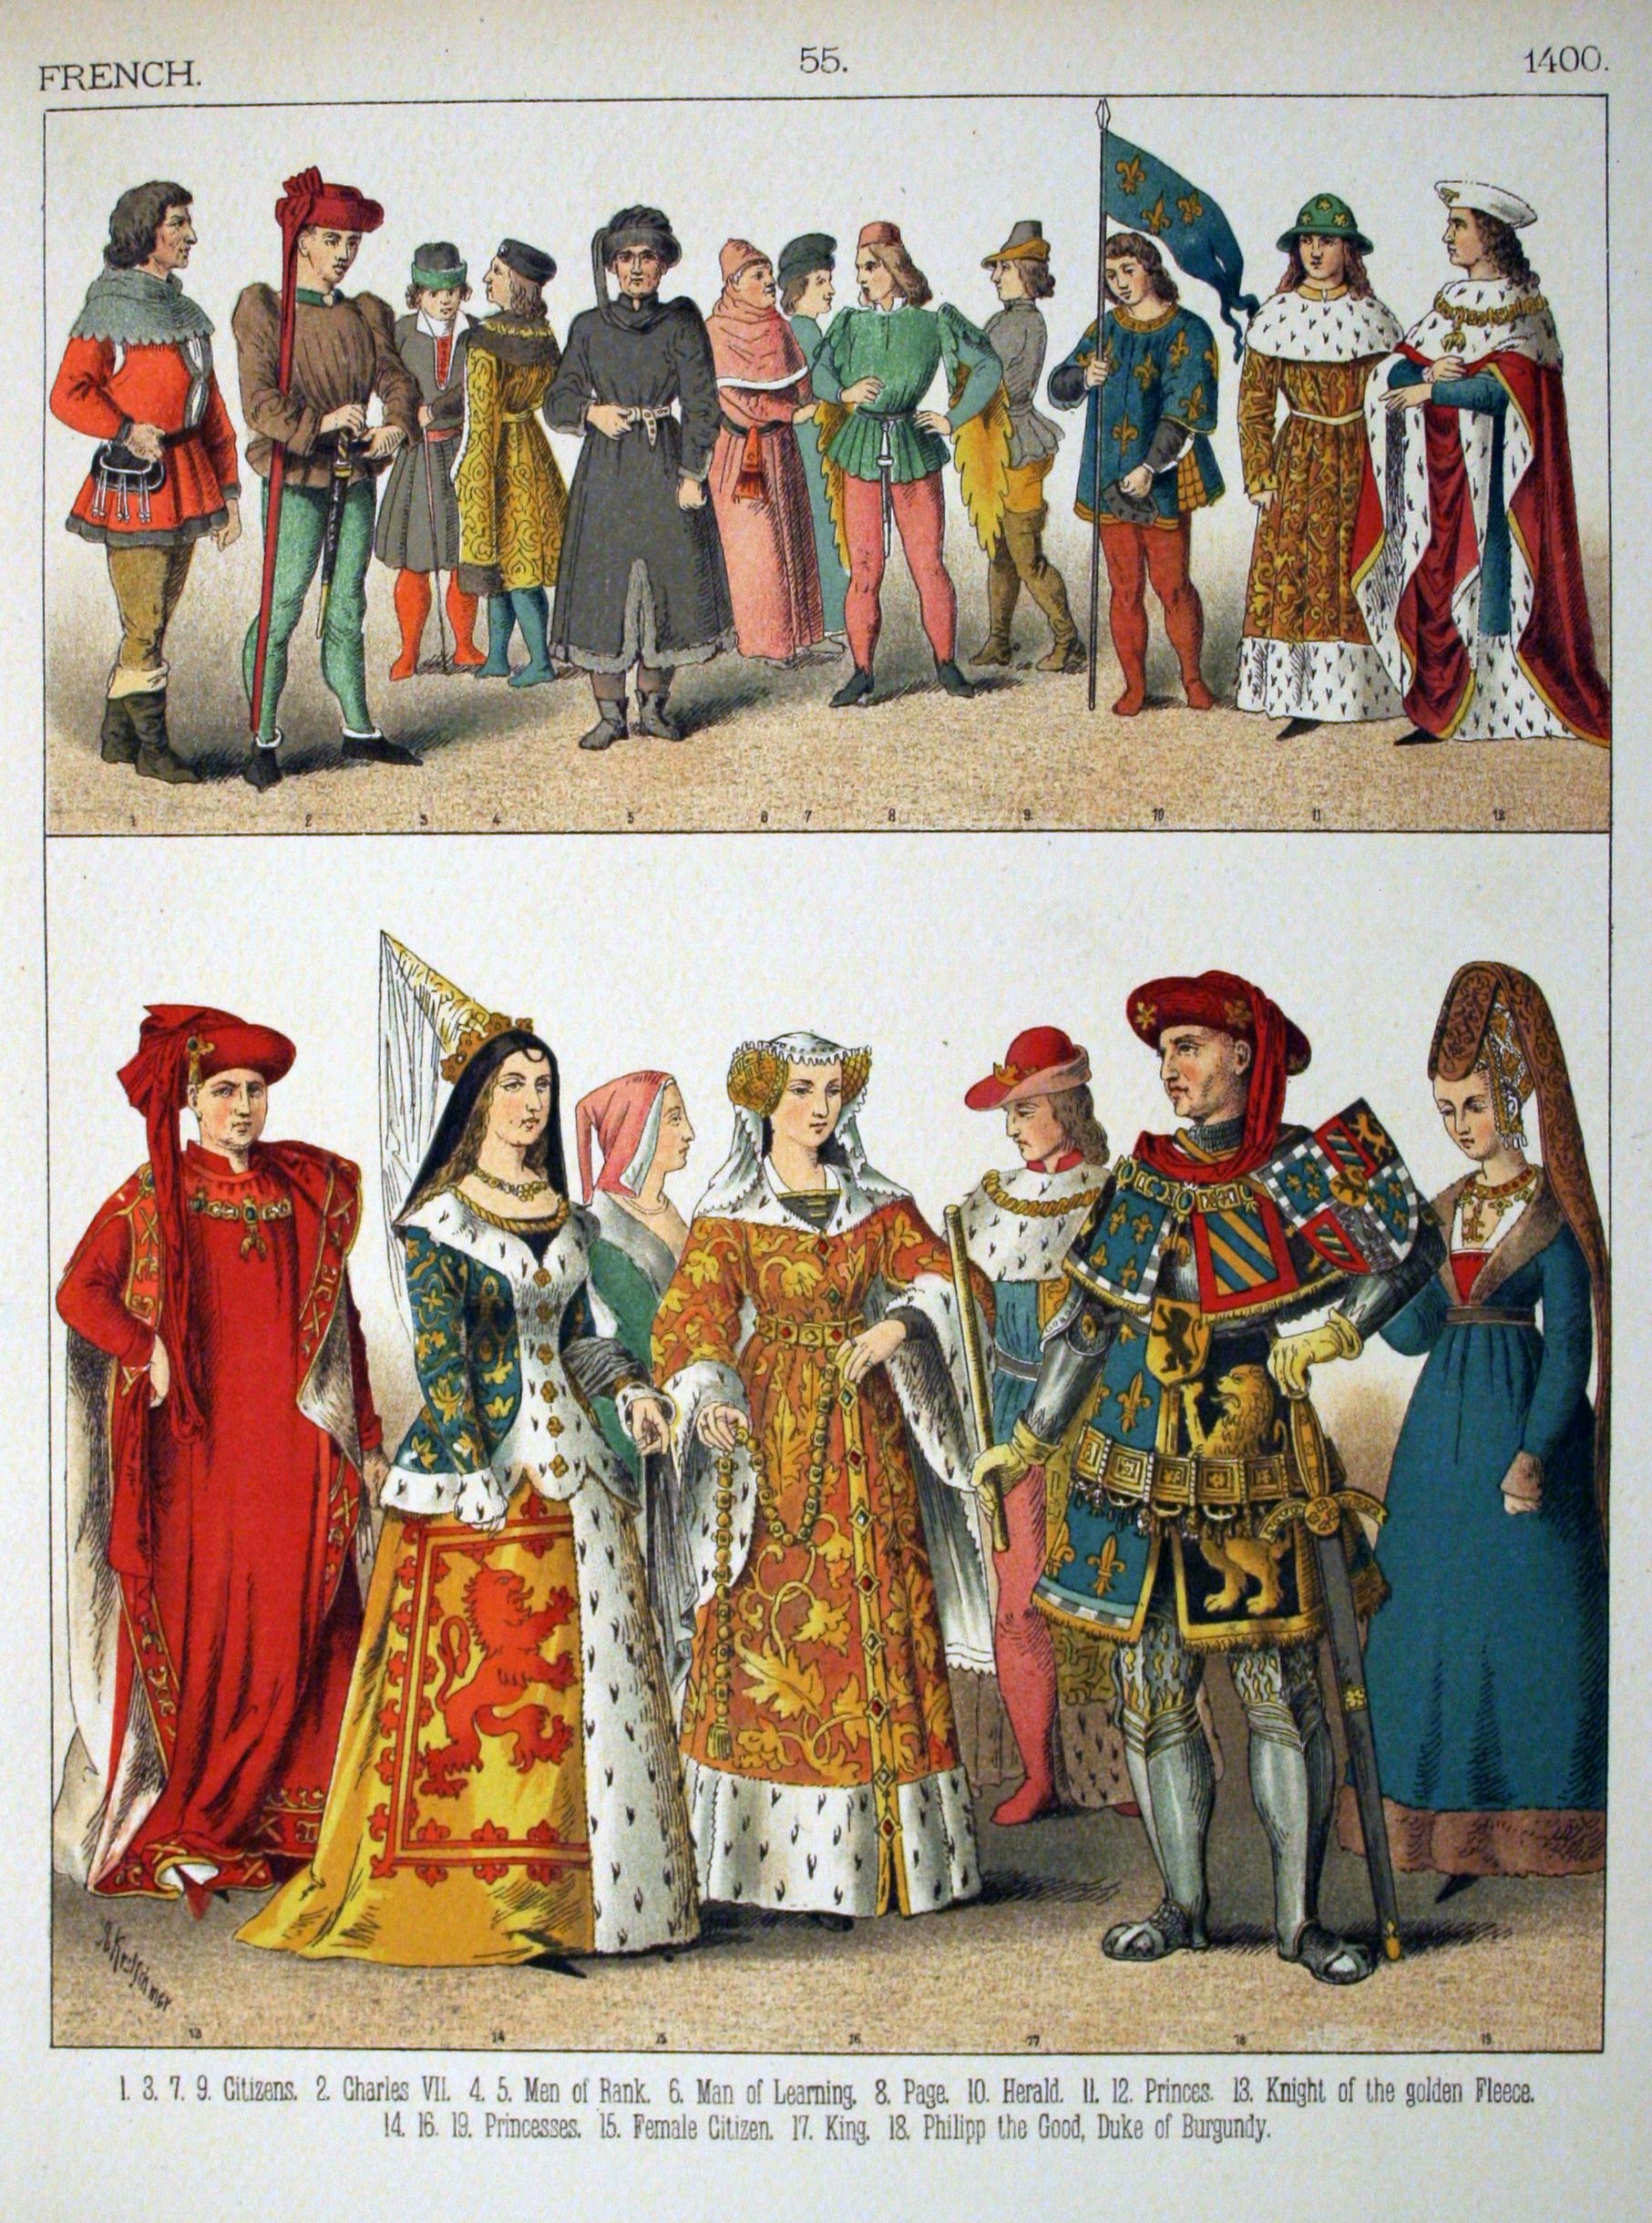 Http Upload Wikimedia Org Wikipedia Commons D De 1400 2c French 055 Costumes Of All Nations 281882 Roupas Historicas Vestuario Medieval Roupas De Epoca